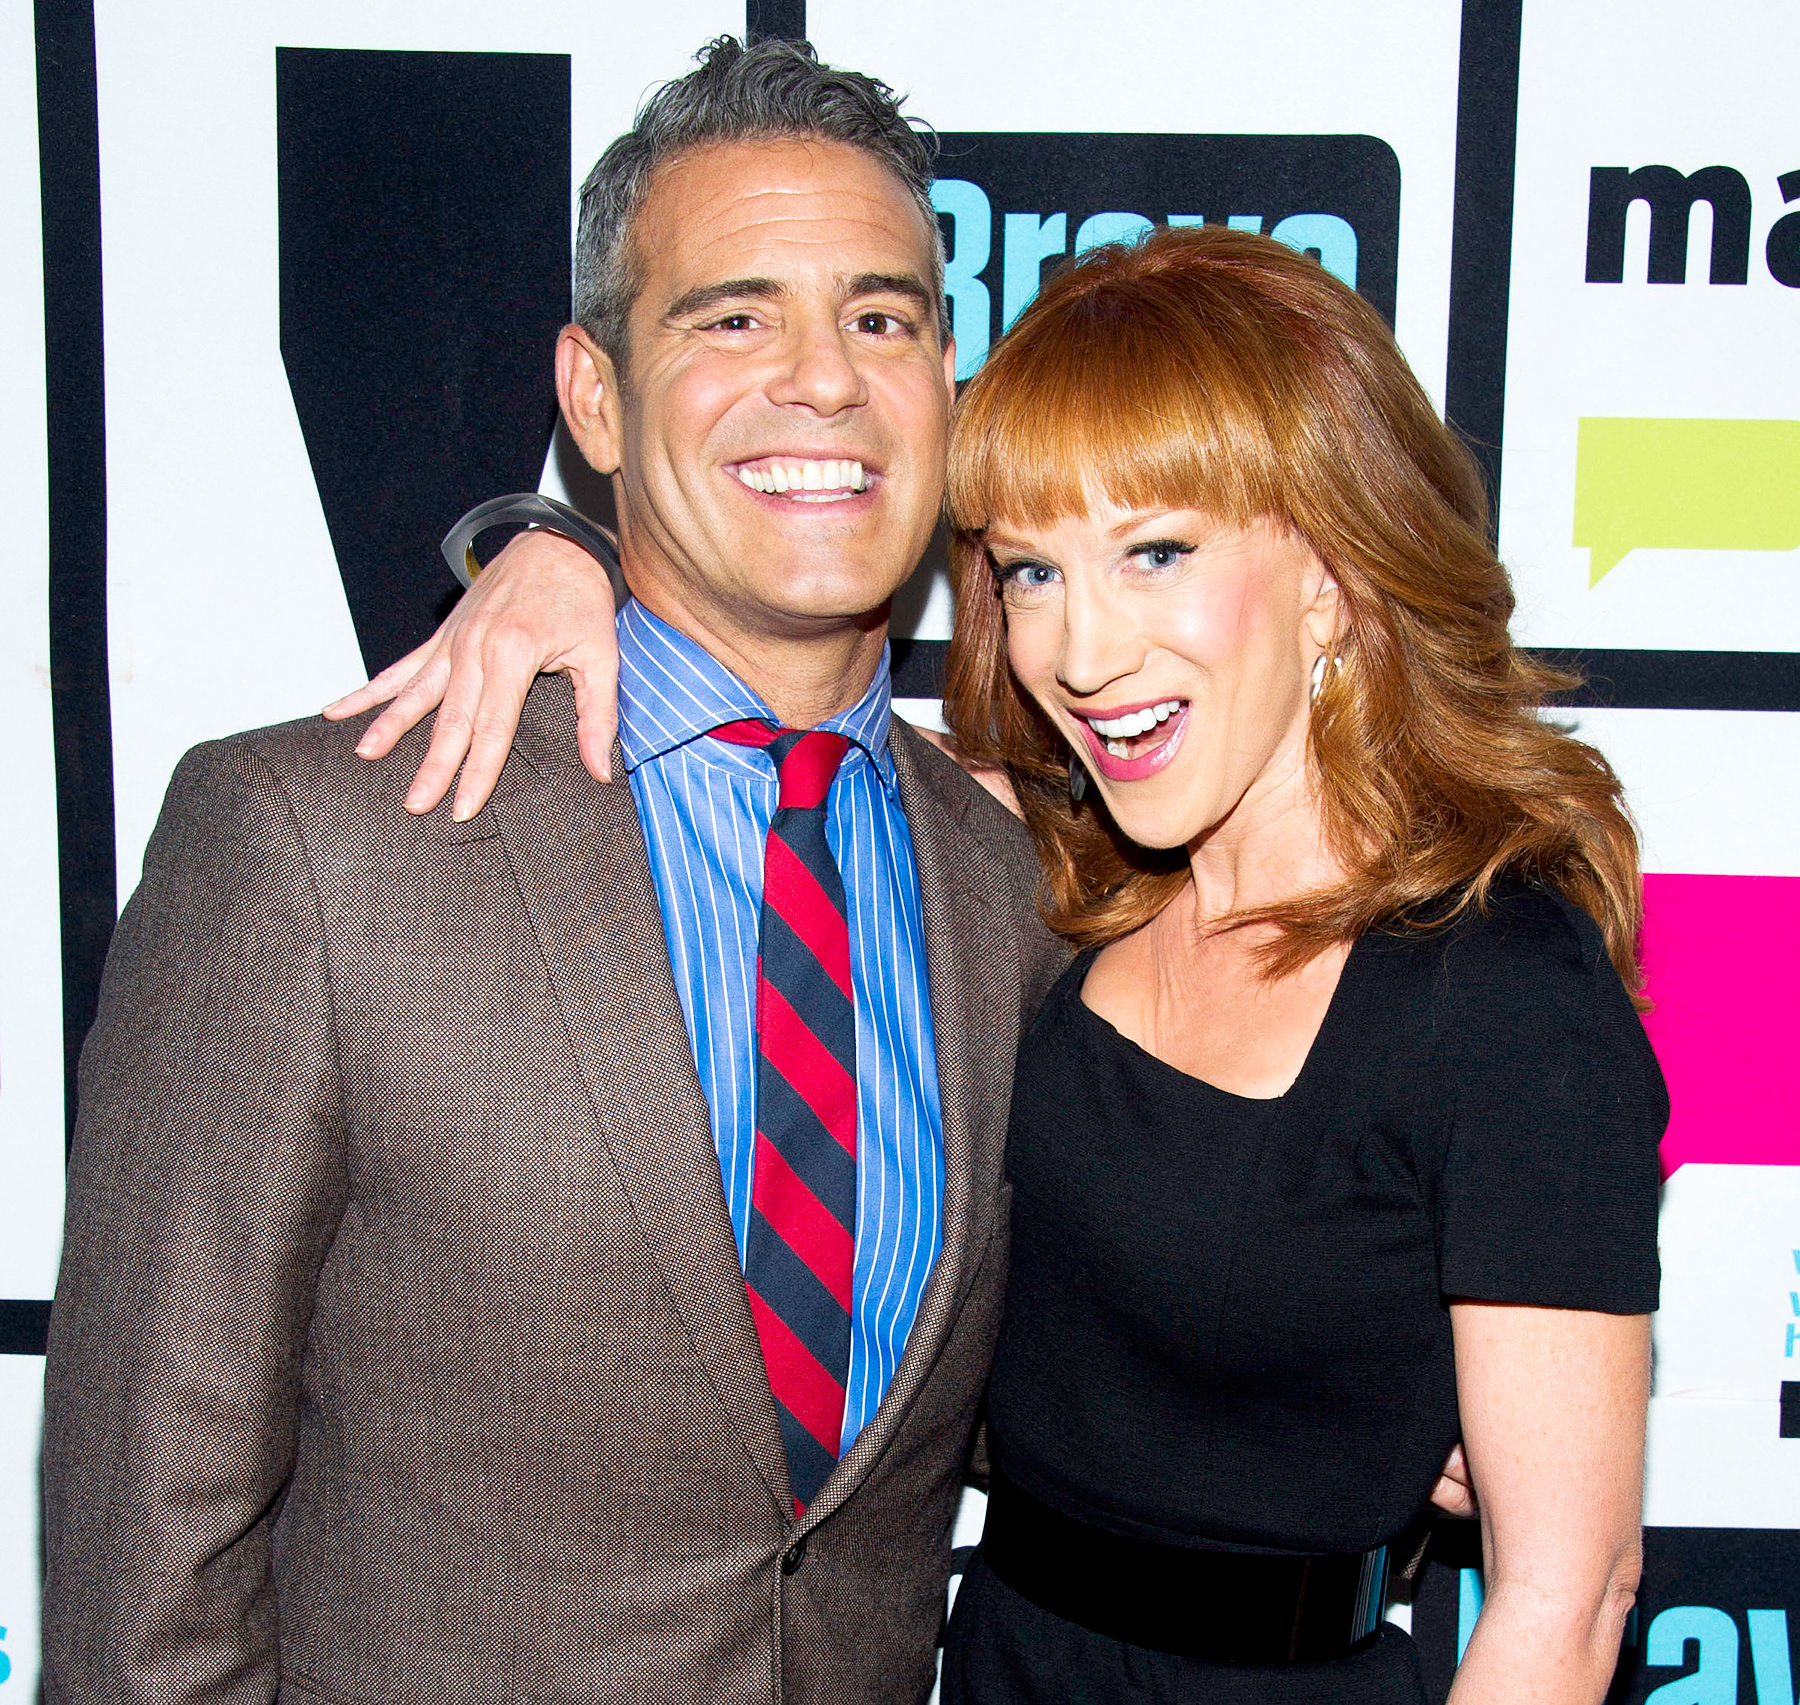 Kathy Griffin Puts TMZ Founder Harvey Levin's Phone Number Online